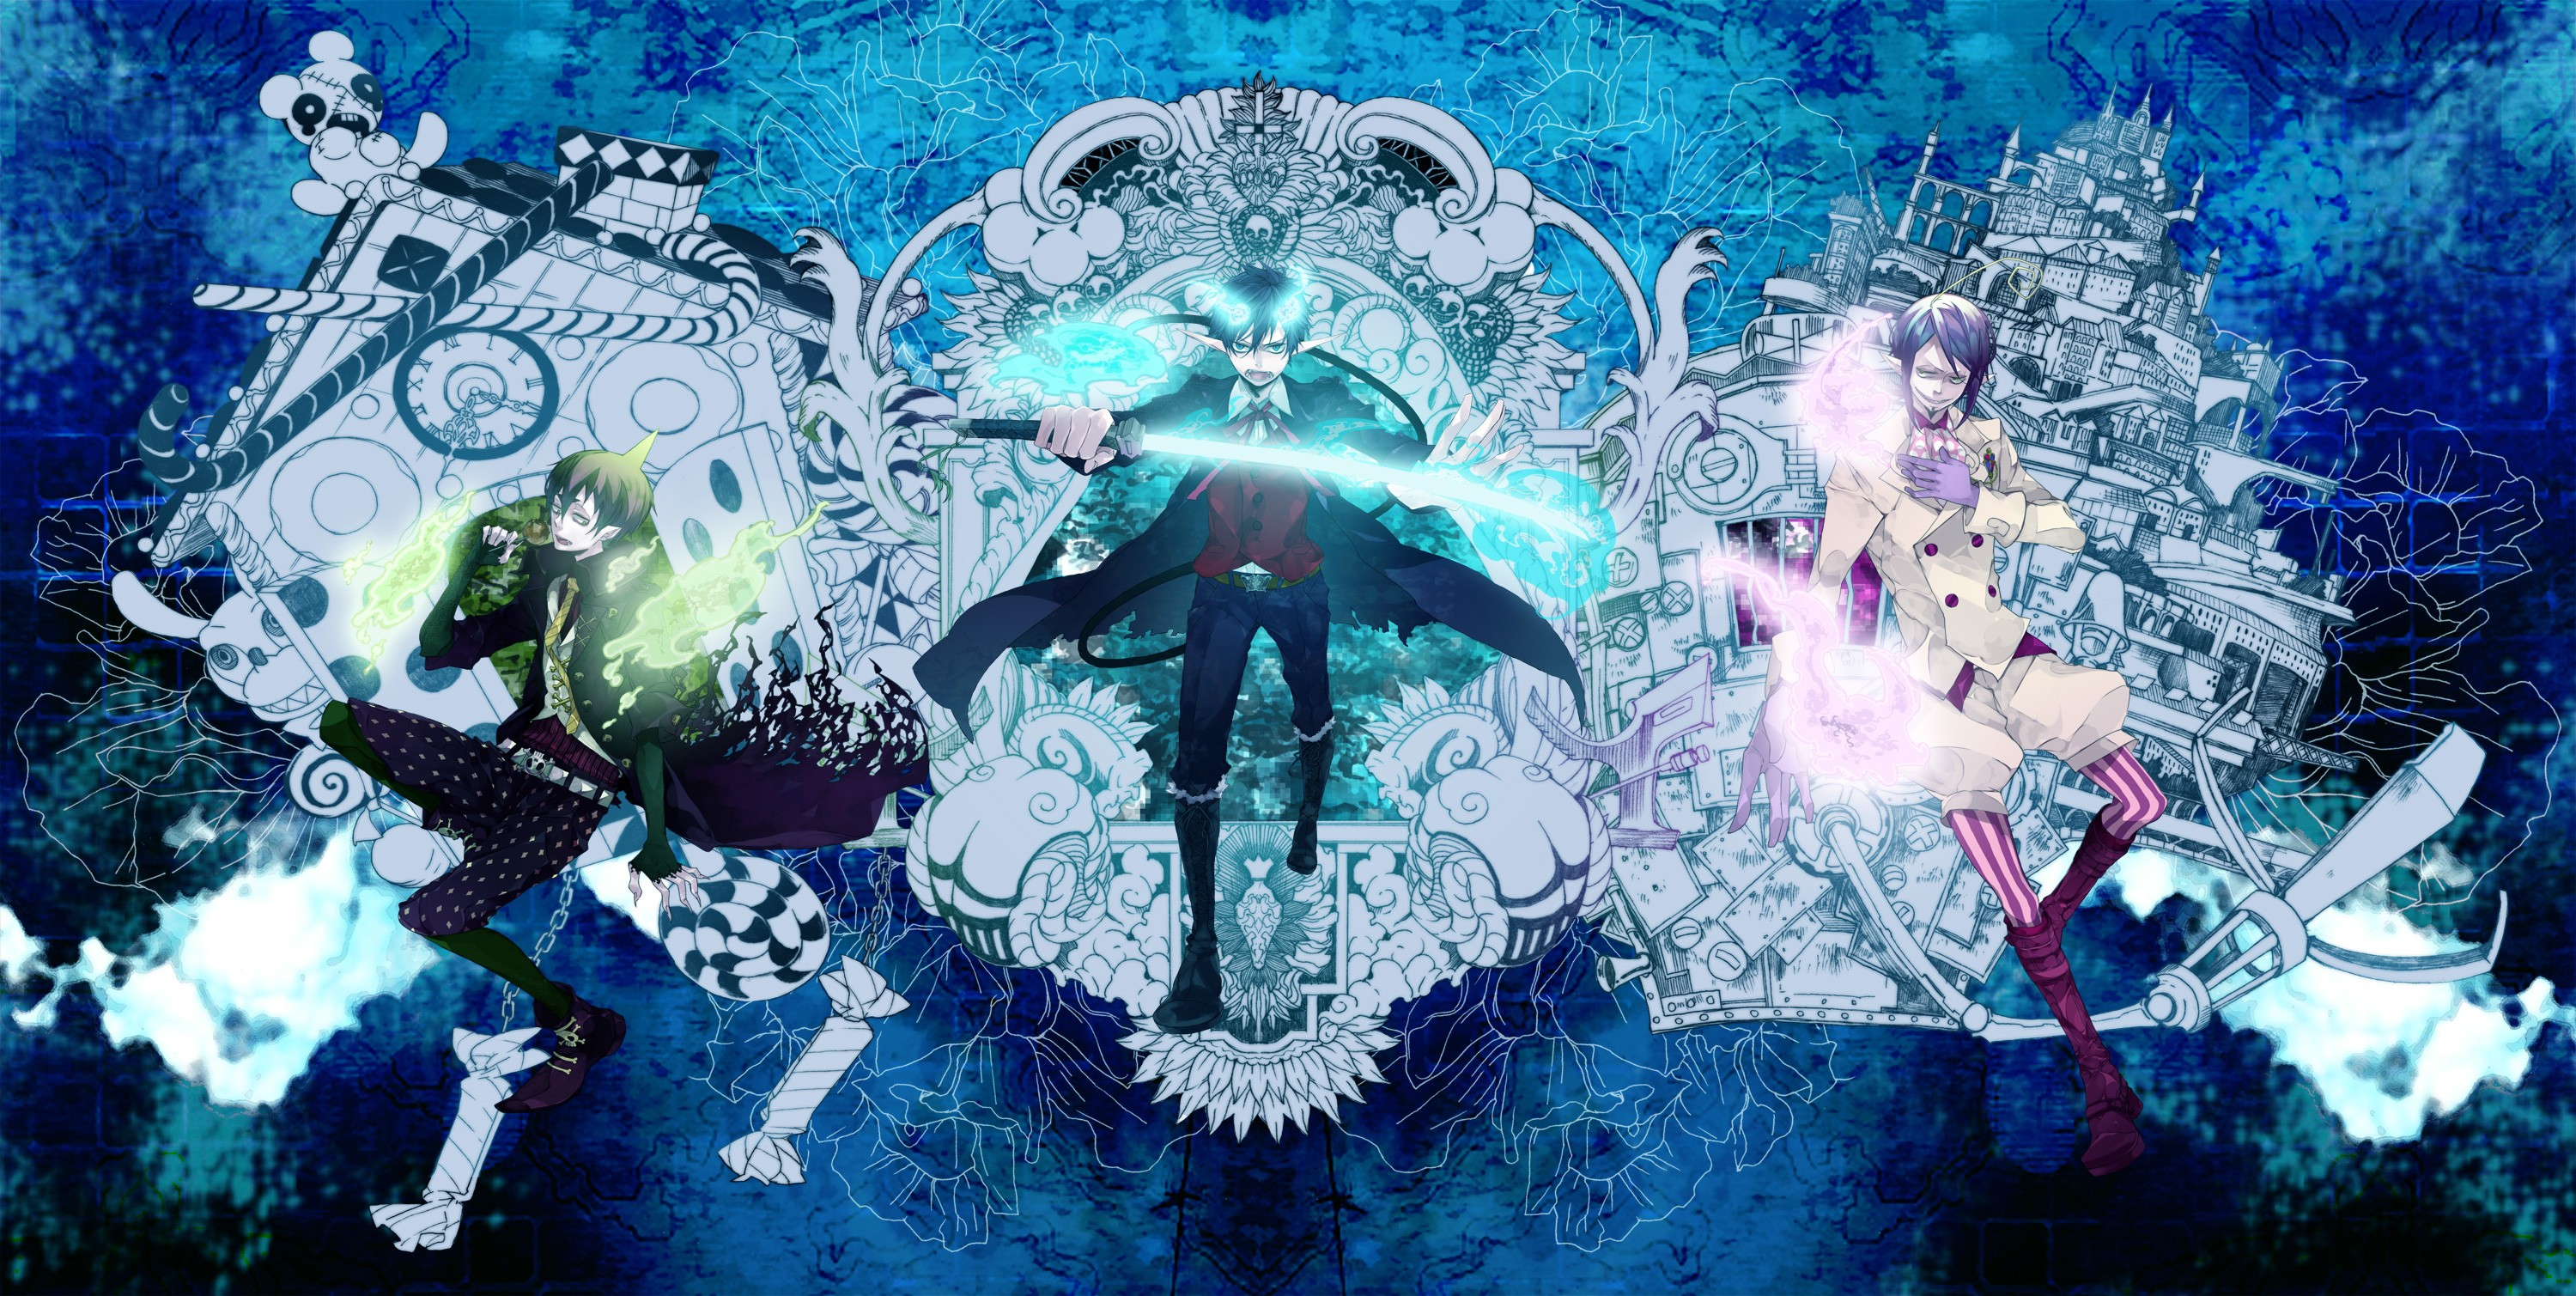 Blue Exorcist Wallpaper Download Free Amazing Backgrounds For